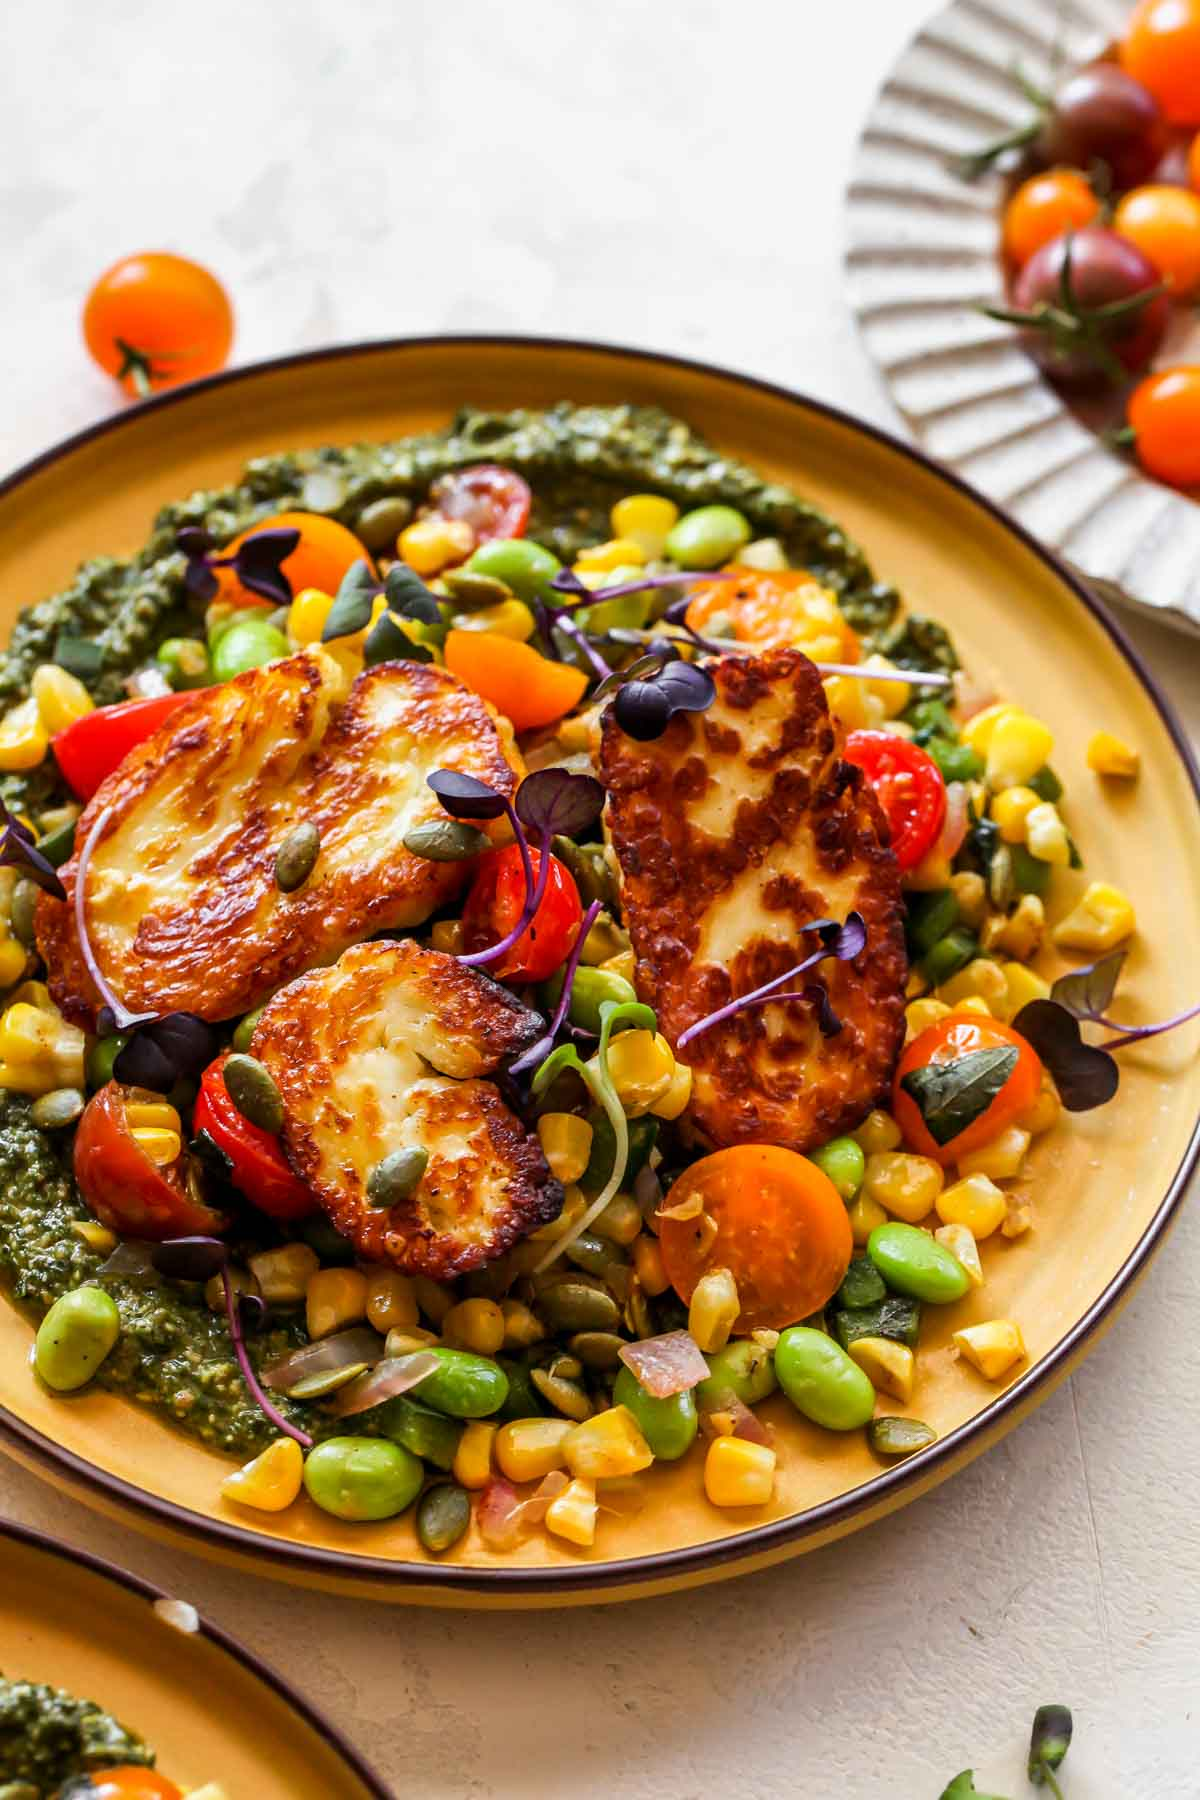 Succotash and halloumi styled on a yellow plate with pesto